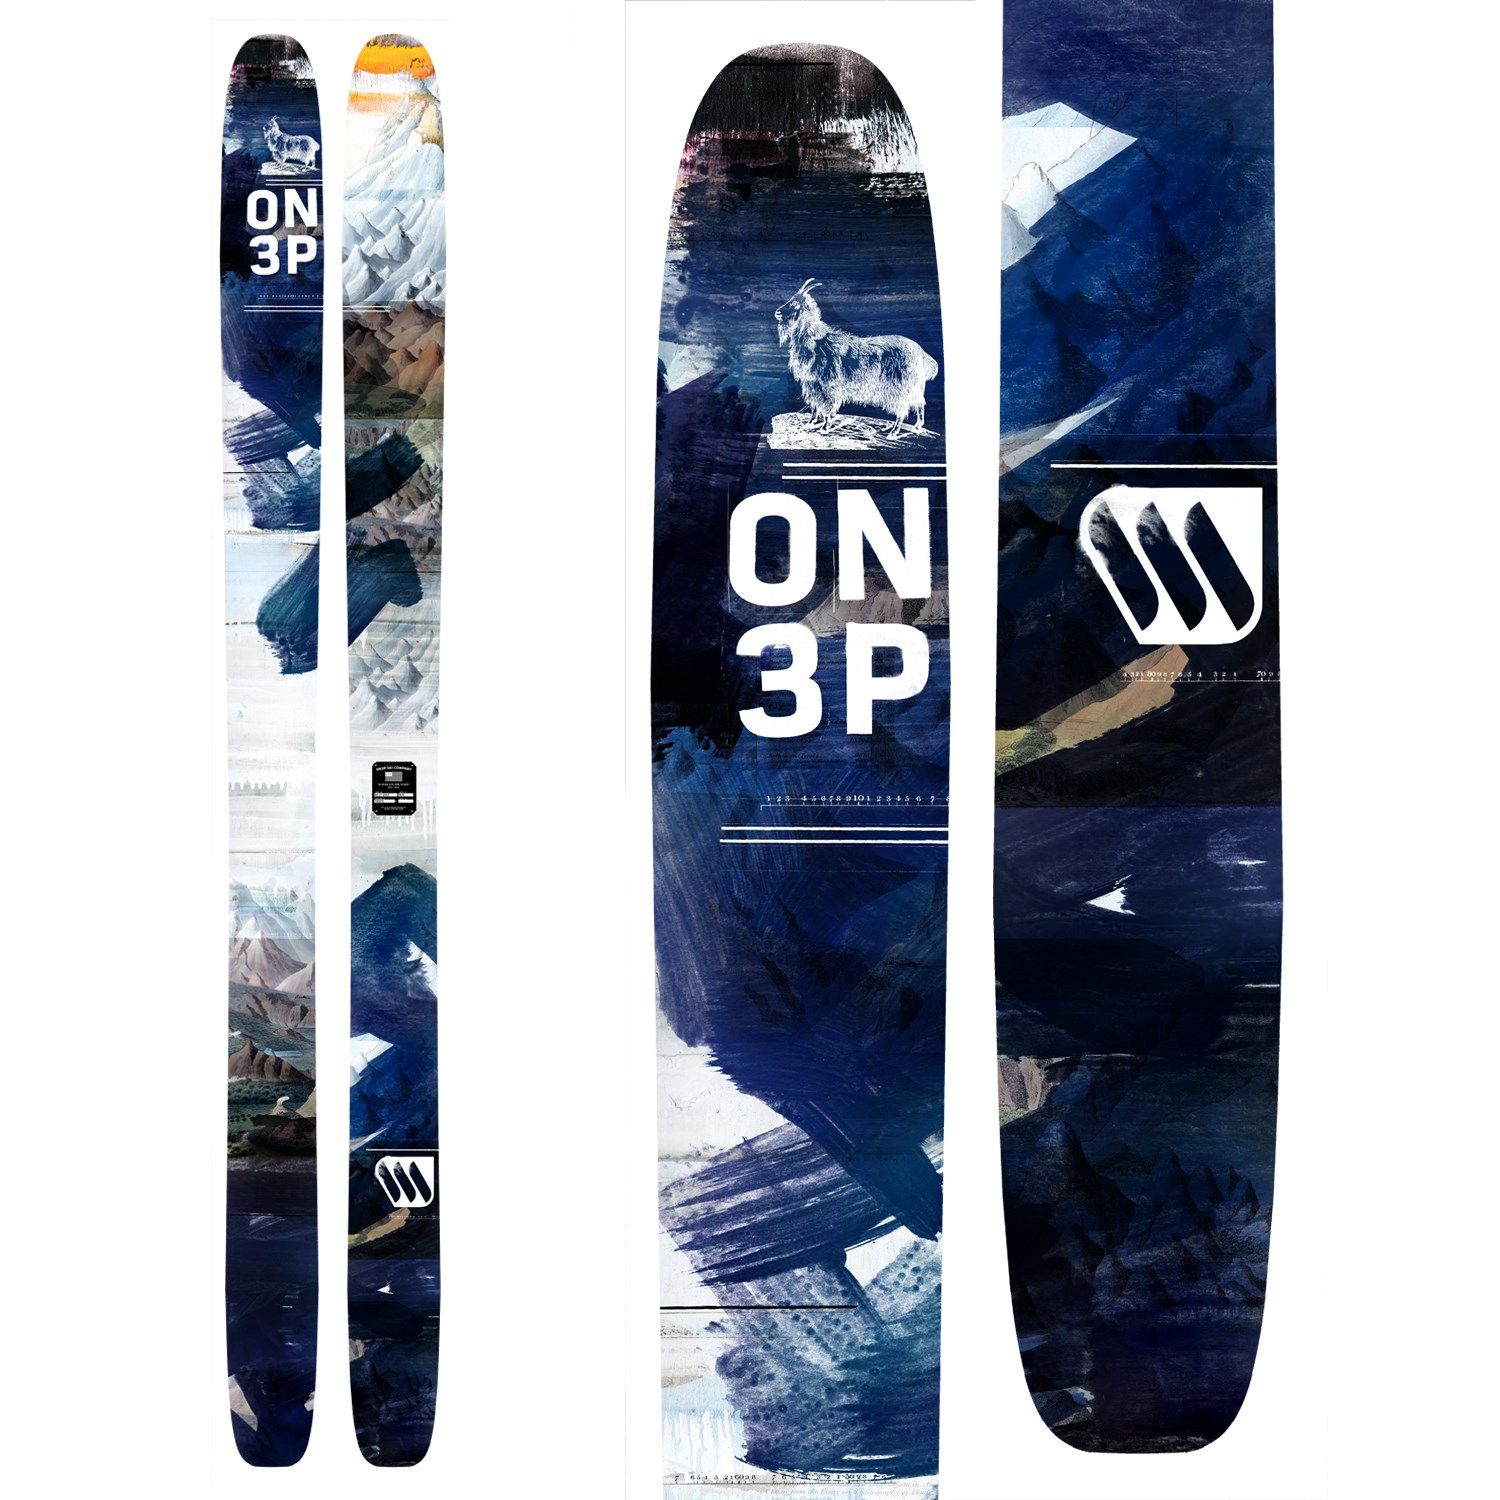 ON3P Billy Goat Skis 2015